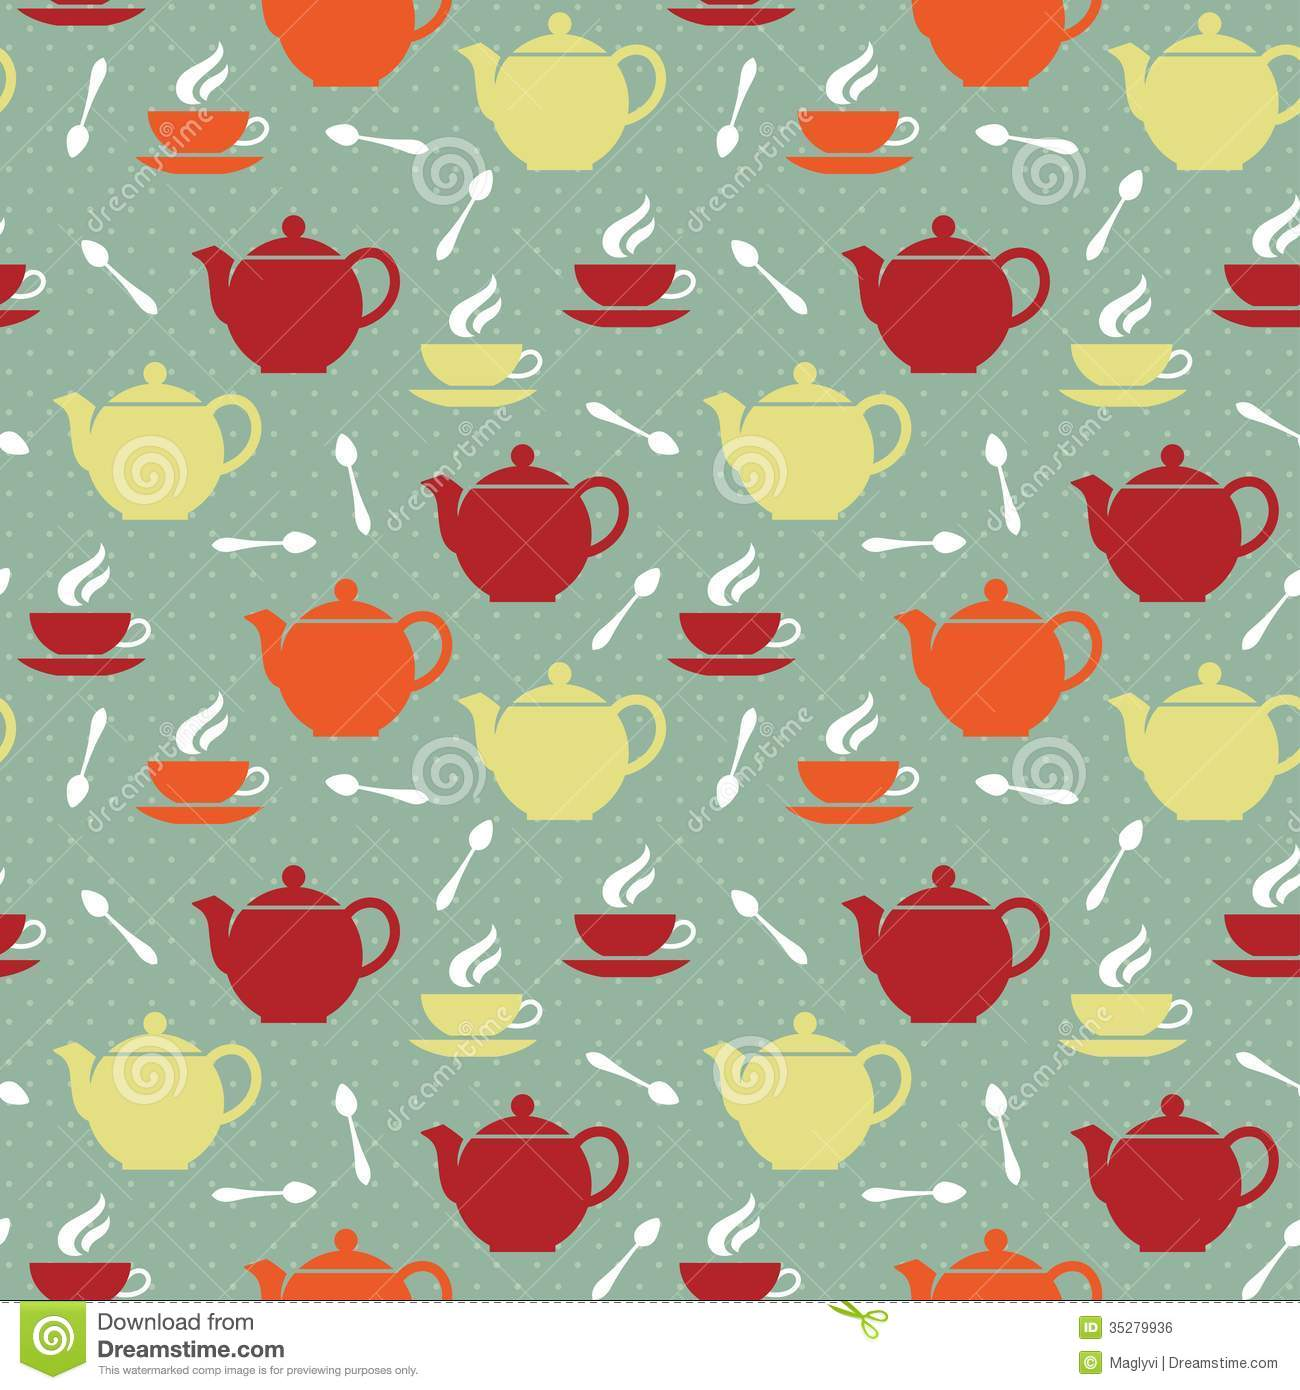 Seamless pattern with colored teapots, teacups and teaspoons in retro ...: www.dreamstime.com/royalty-free-stock-image-teapots-teacups...